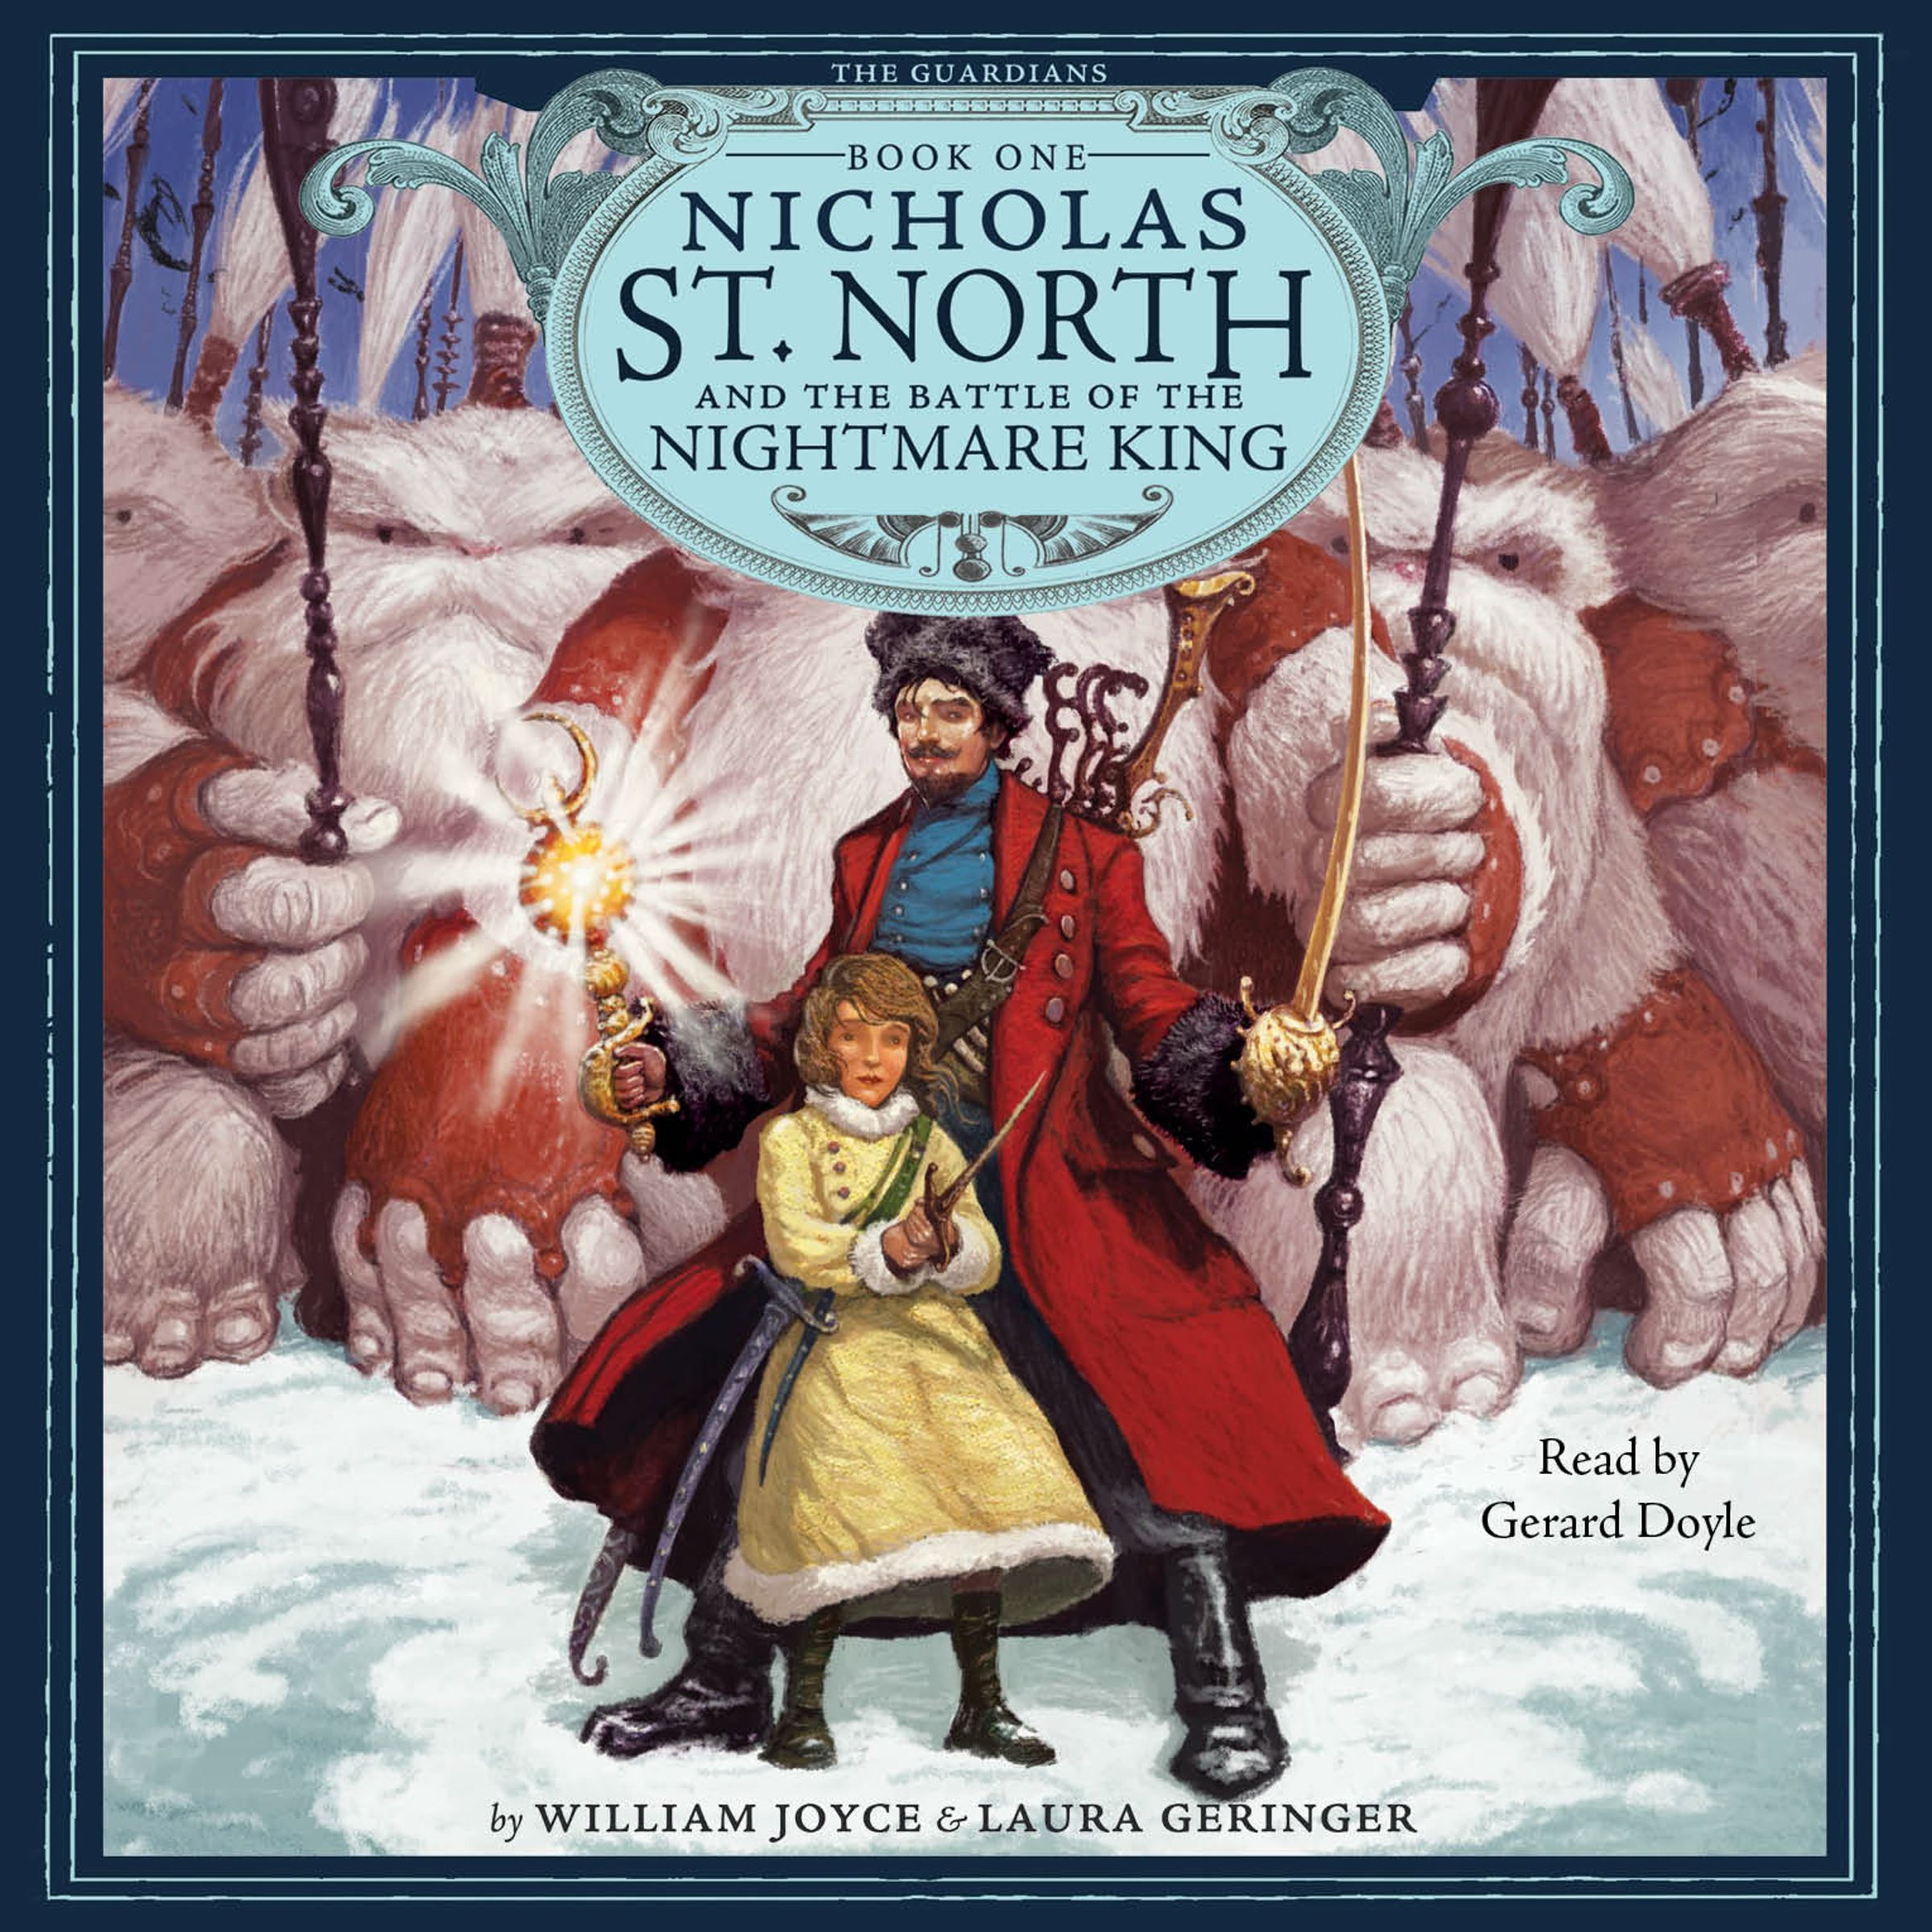 Nicholas-st-north-and-the-battle-of-the-king-9781442348011_hr